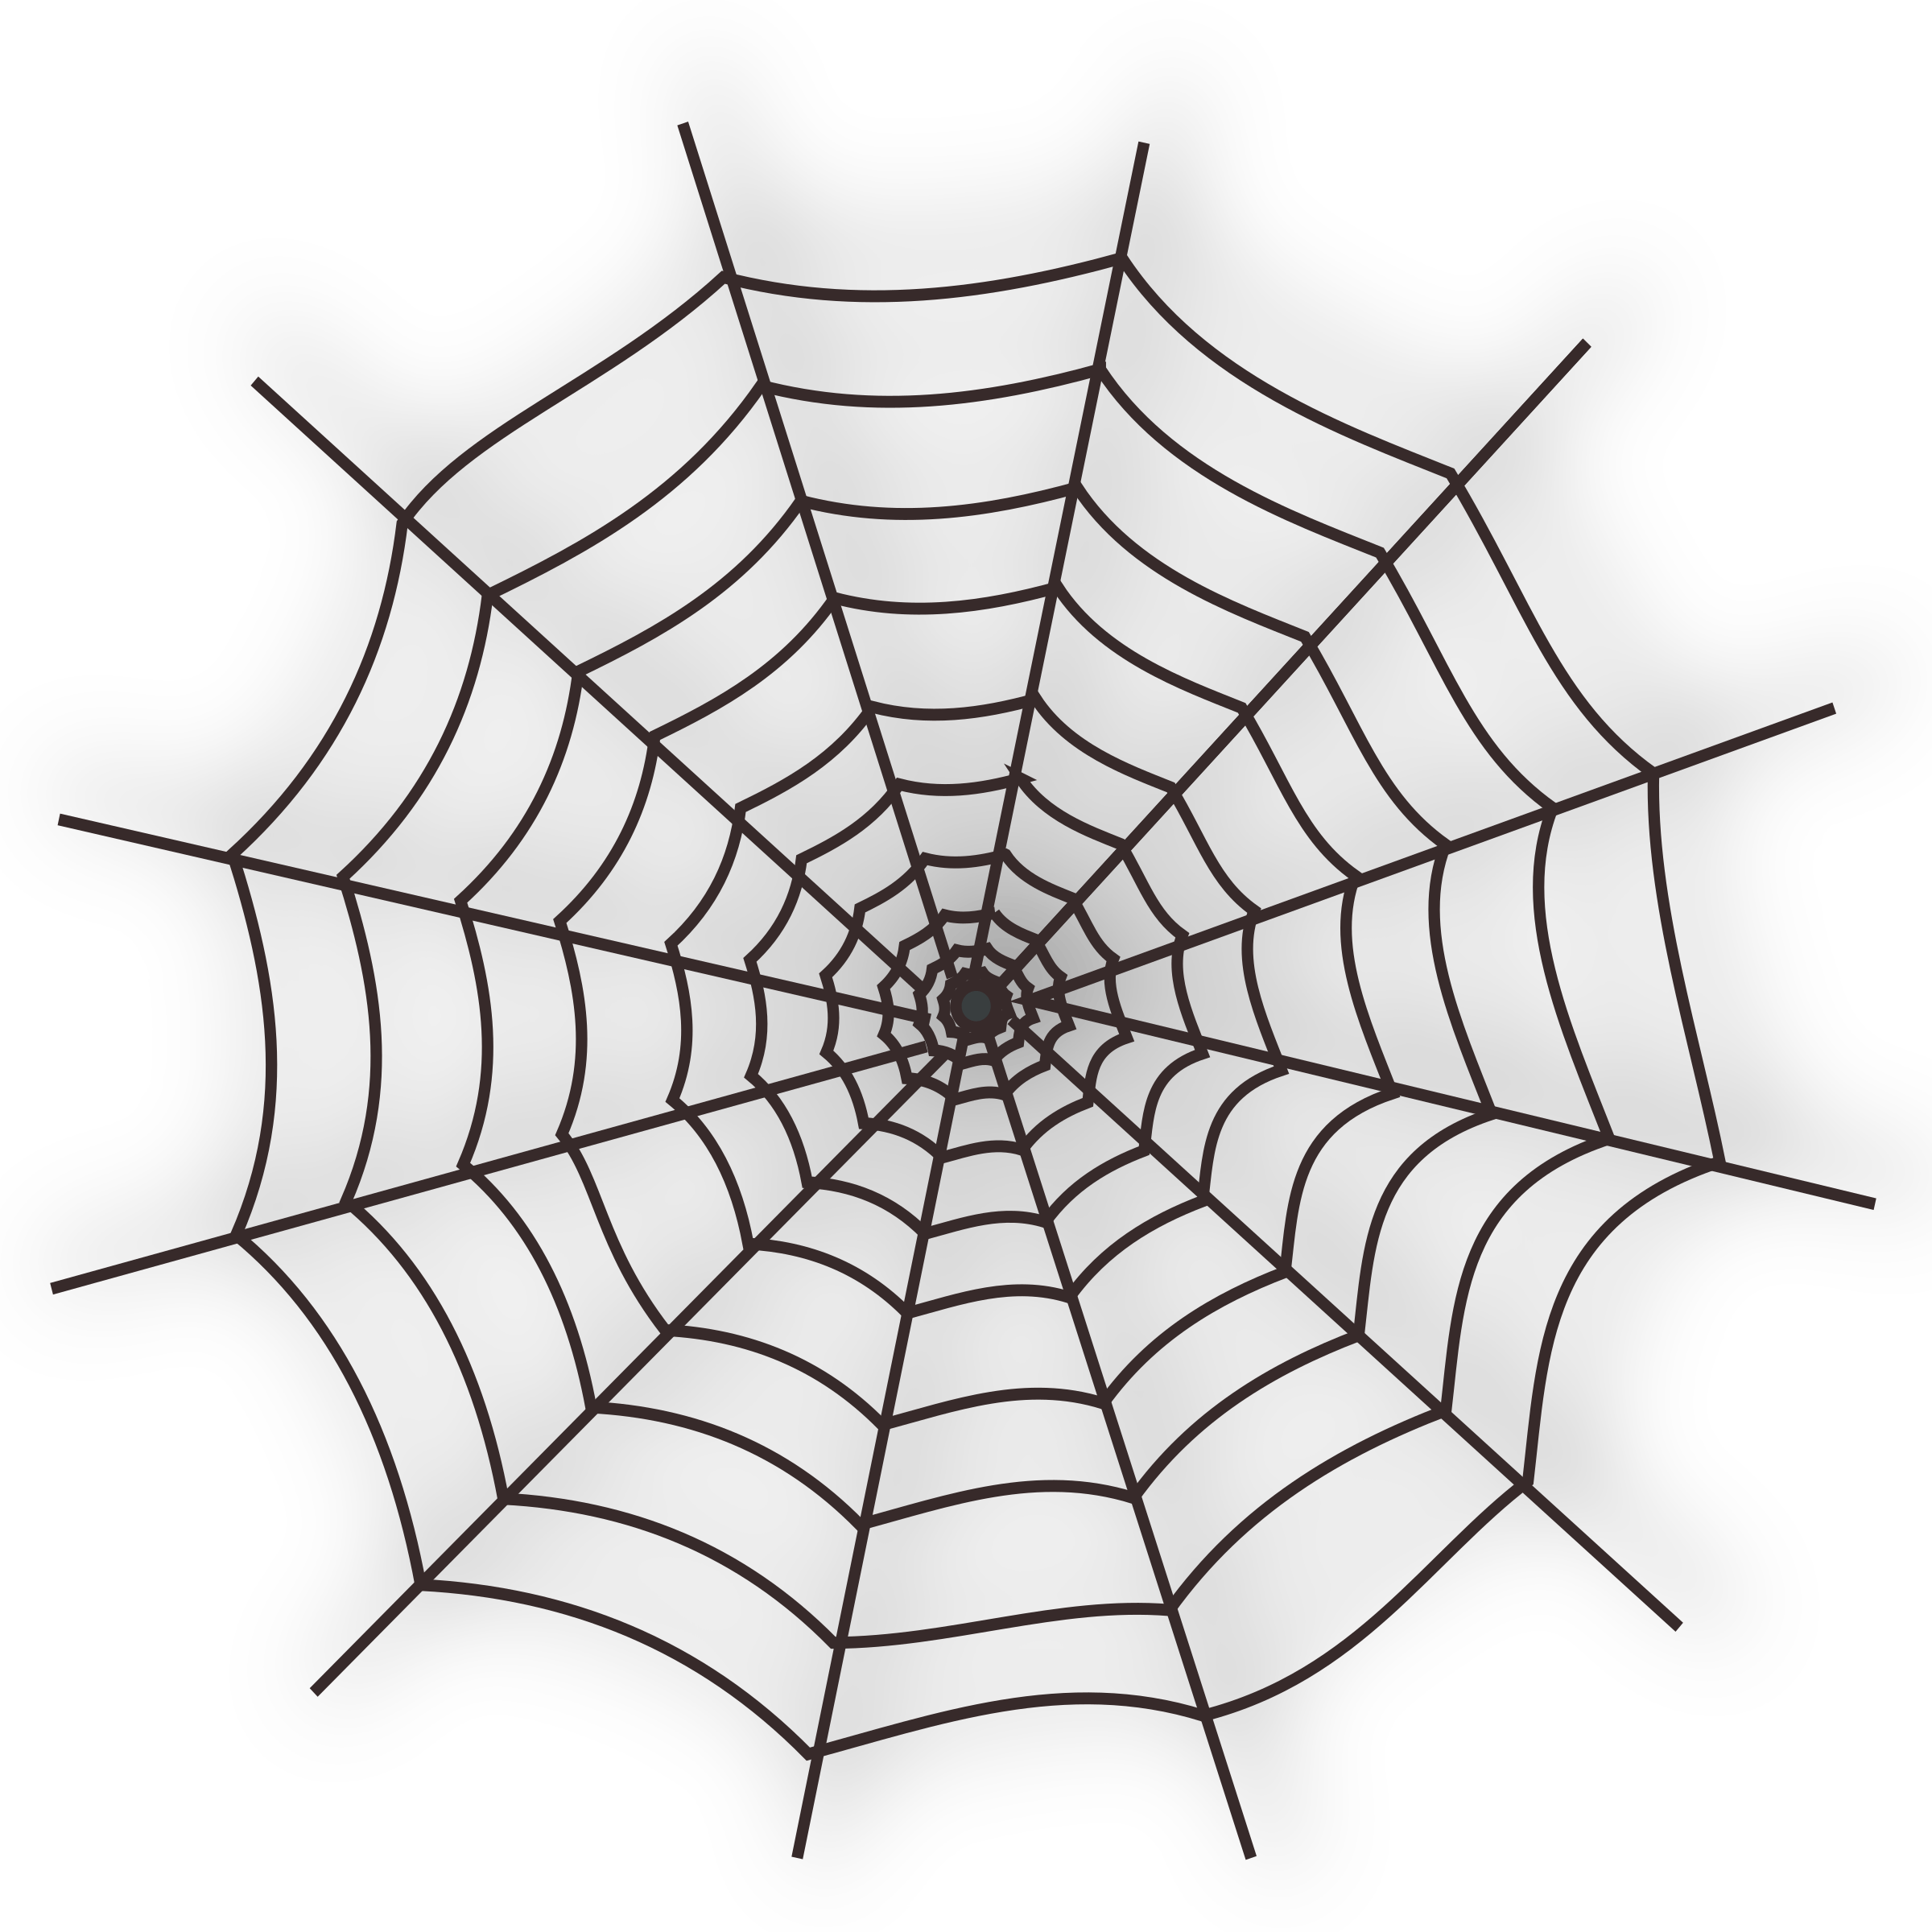 jpg black and white Halloween icon big image. White spider web clipart